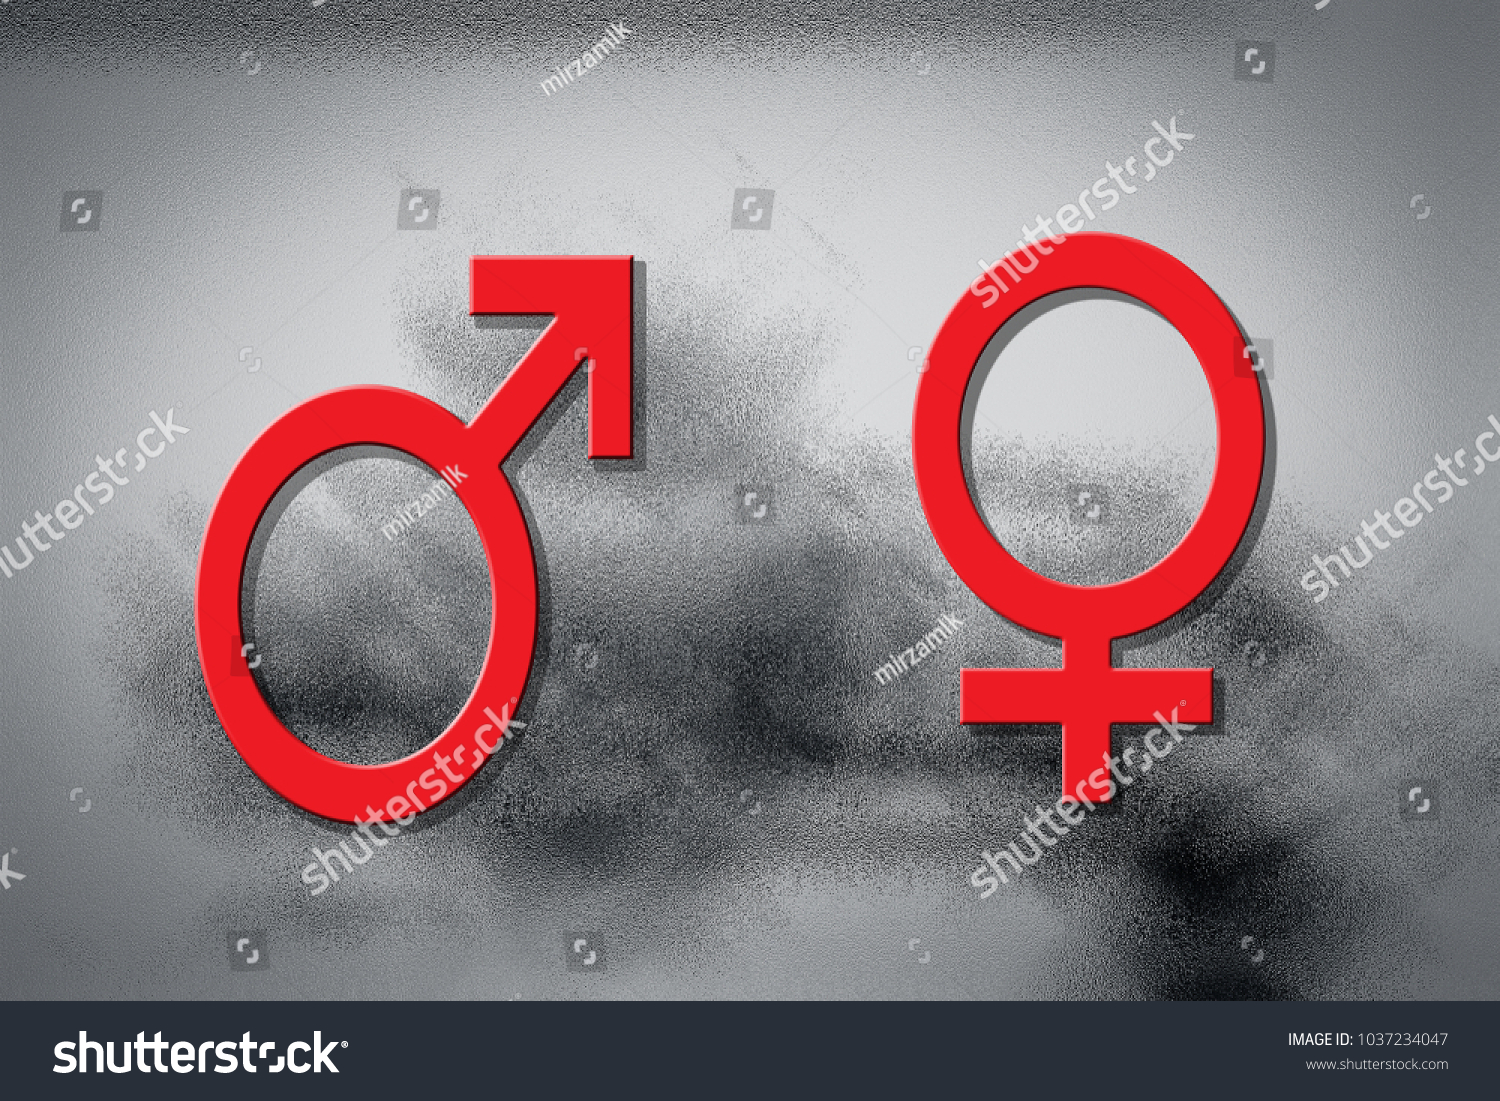 Mars symbol male venus female red stock photo 1037234047 shutterstock the mars symbol for male and the venus for female in red concept of love biocorpaavc Gallery